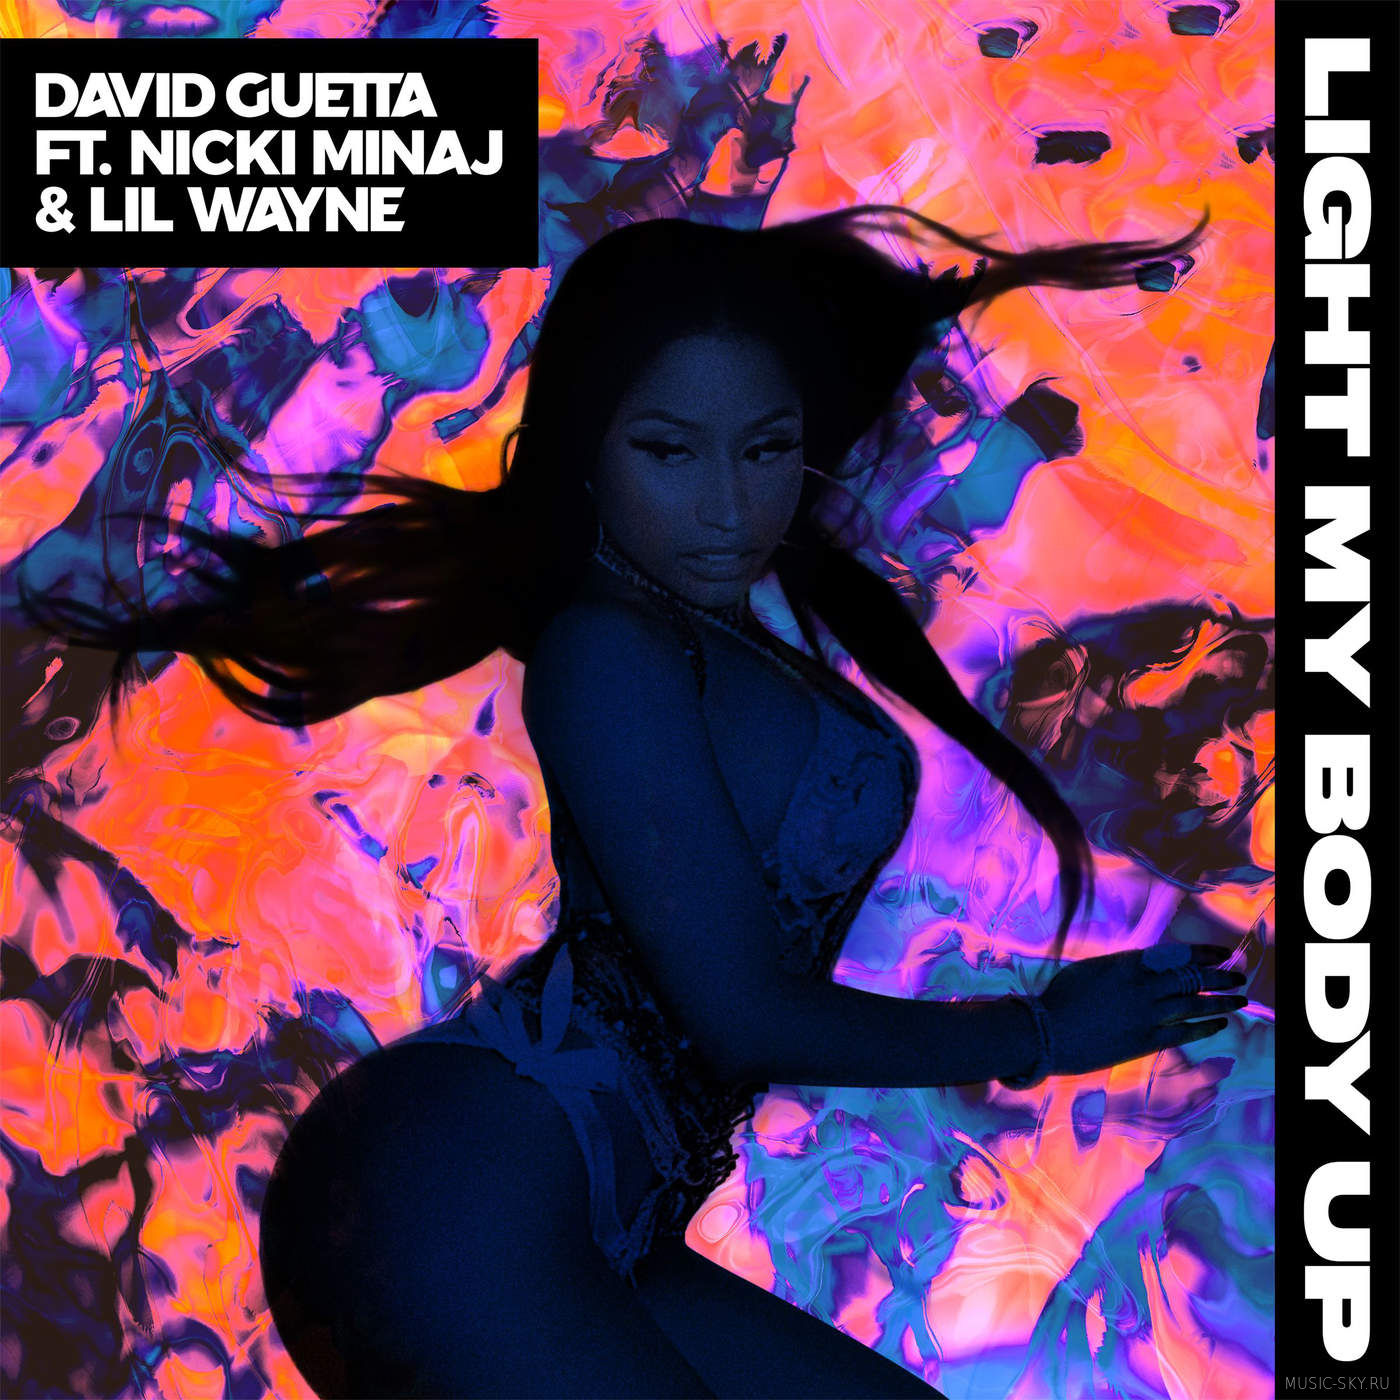 David Guetta - Light My Body Up (feat. Nicki Minaj & Lil Wayne)